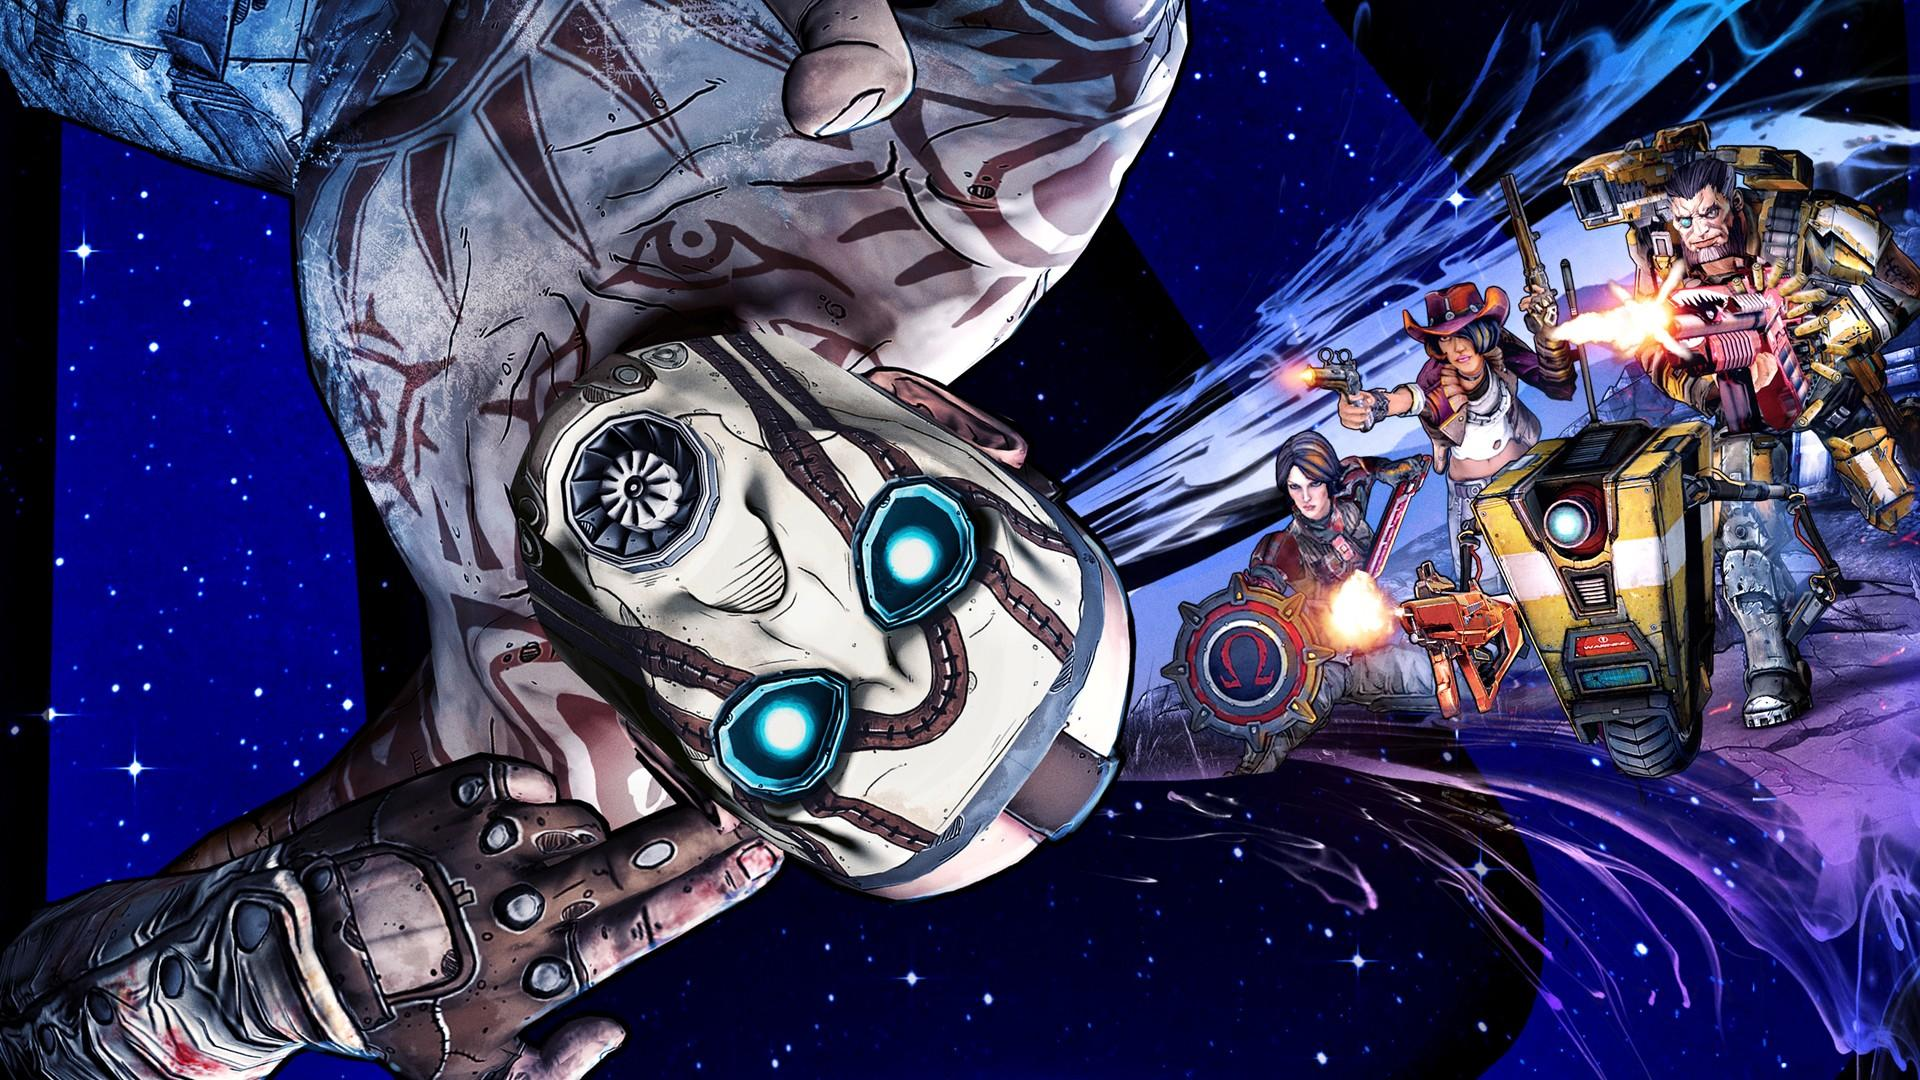 Wallpapers Wallpapers from Borderlands: The Pre